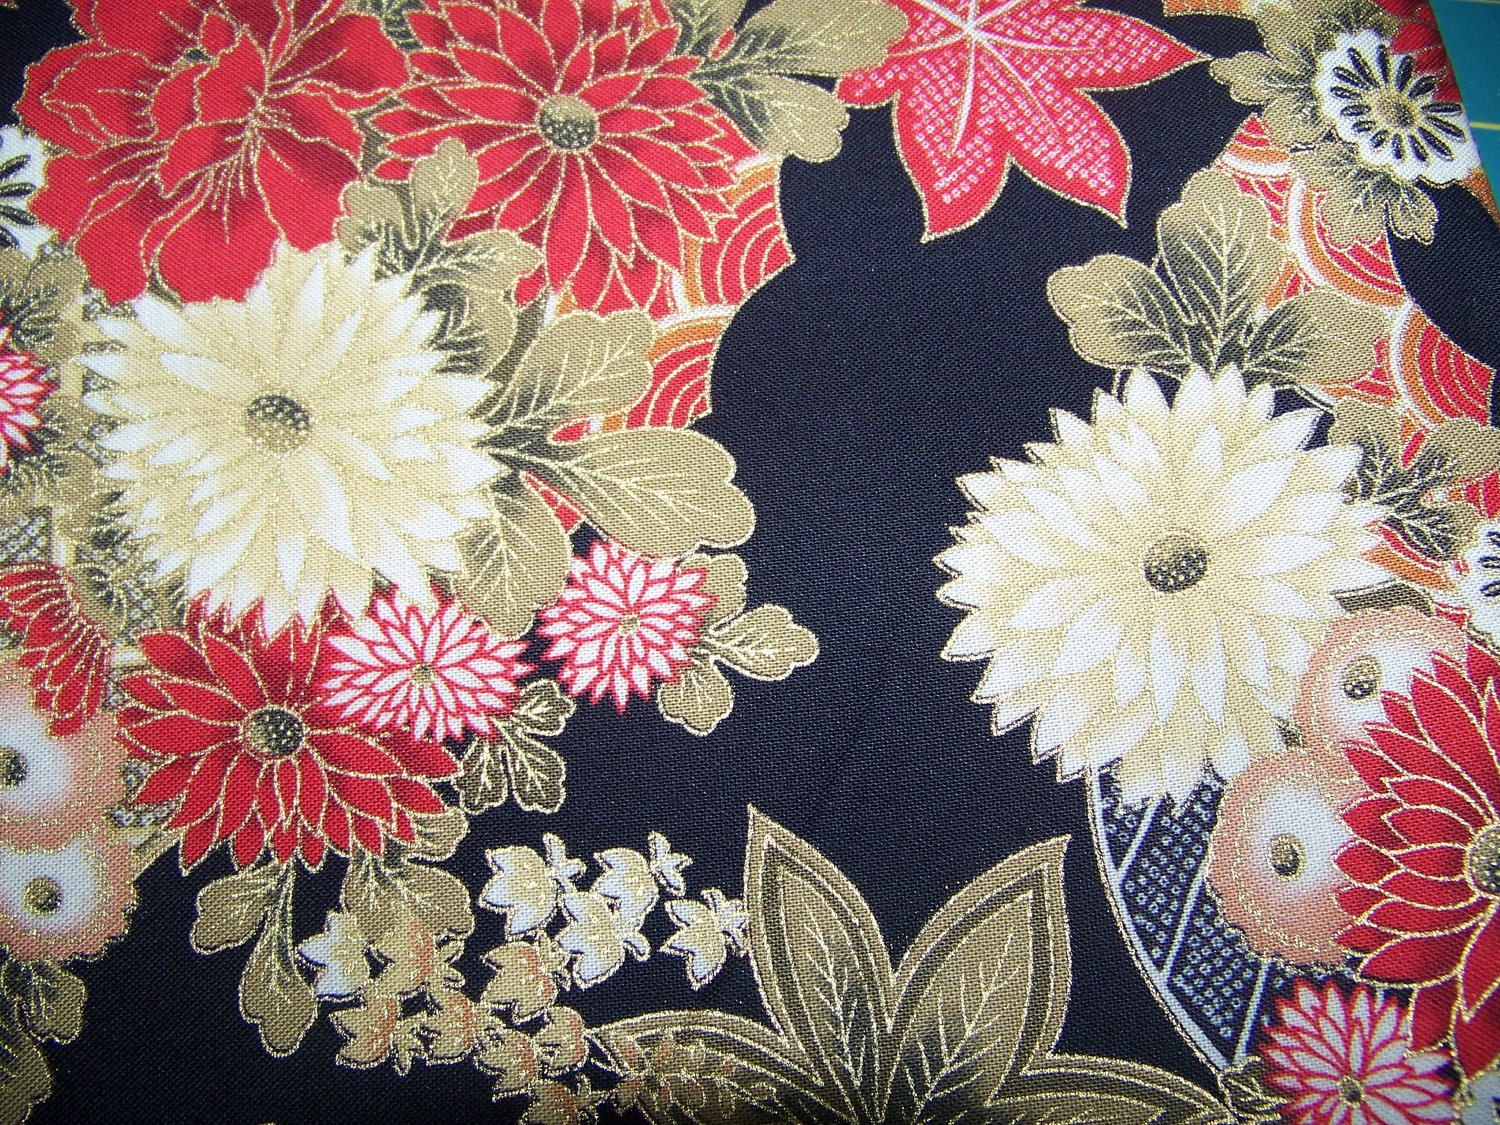 Fabric Oriental Print By Quilt Gate